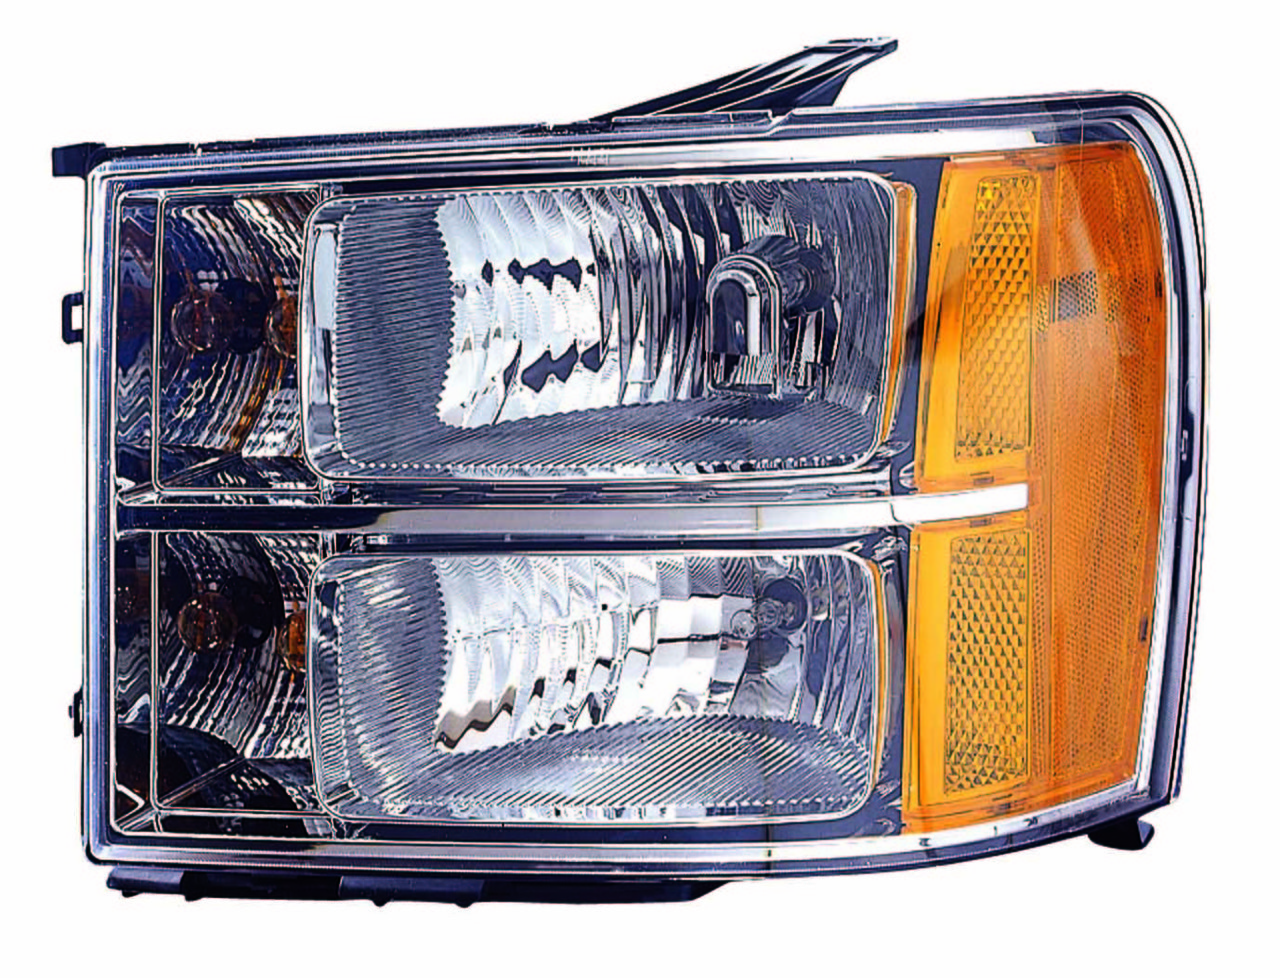 GMC Sierra 1500/2500/3500 2011 2012 2013 left driver headlight